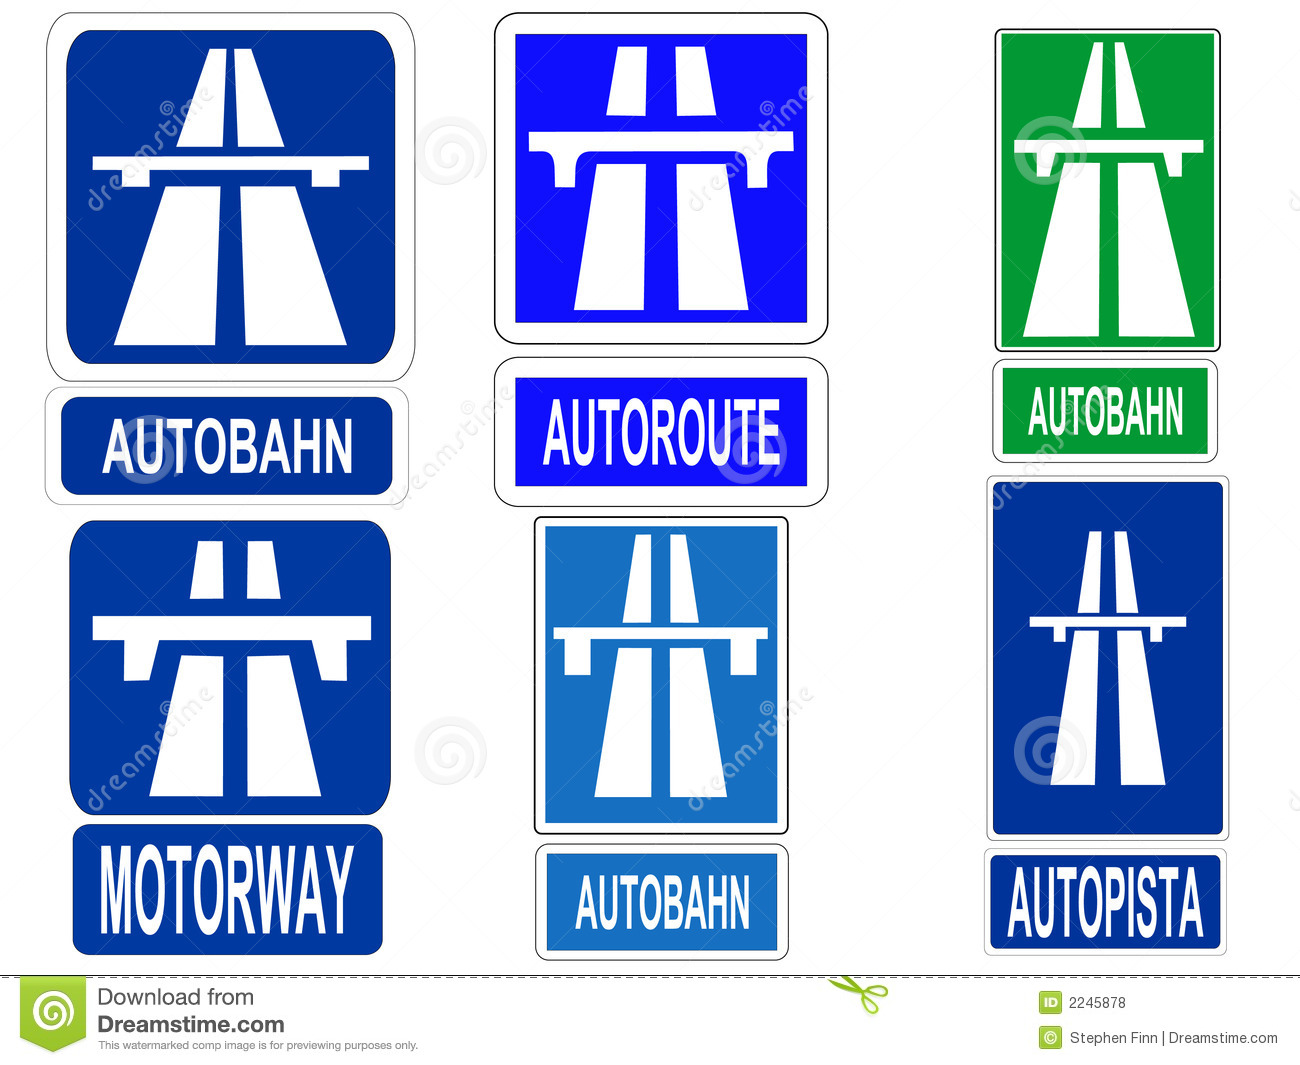 German Autobahn Sign Stock Vector. Image Of Expressway